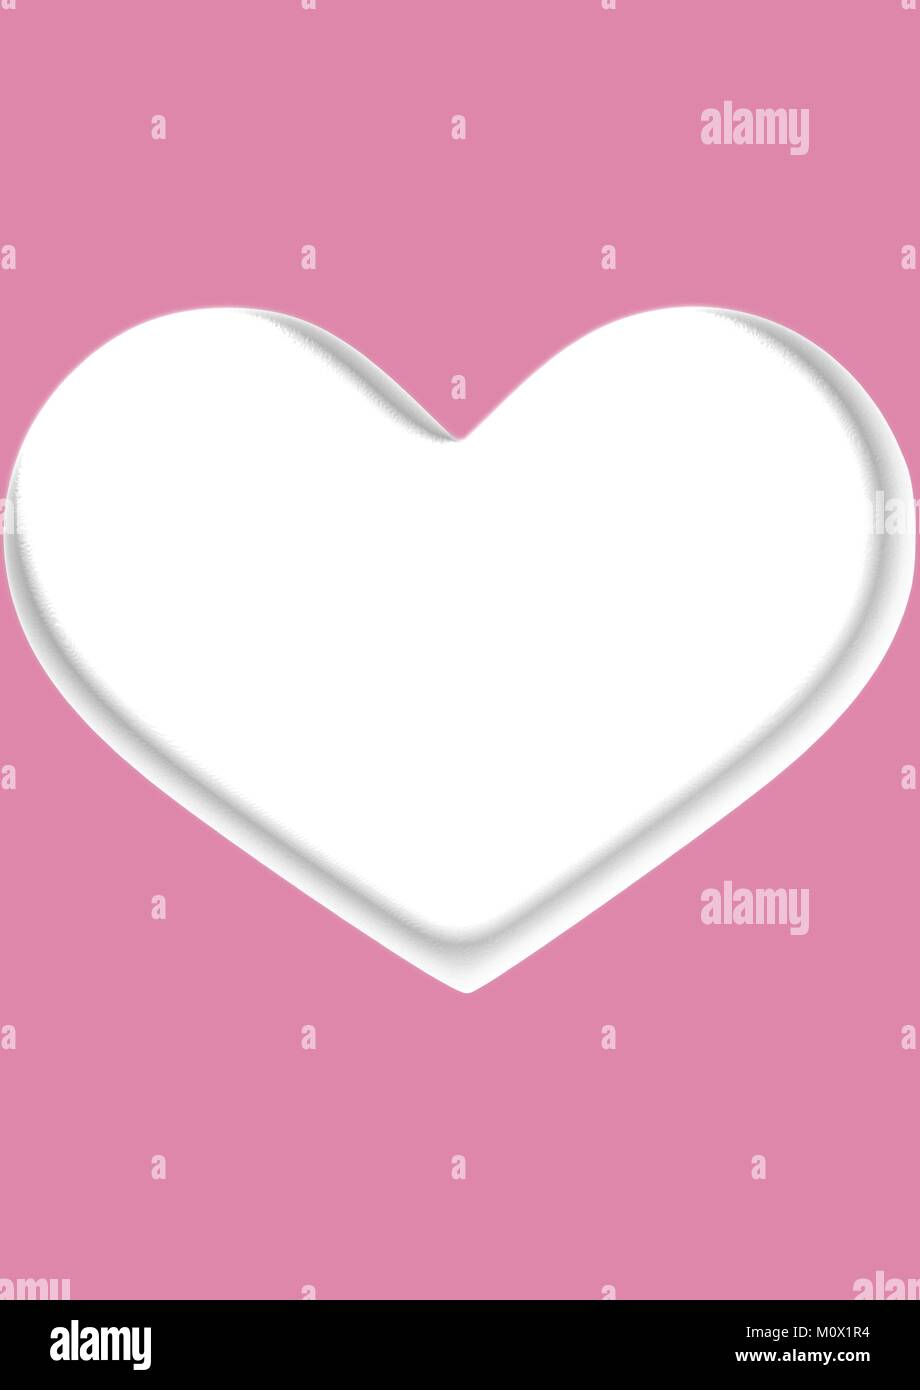 White 3-d Style Heart On Plain Pink Background - Stock Vector